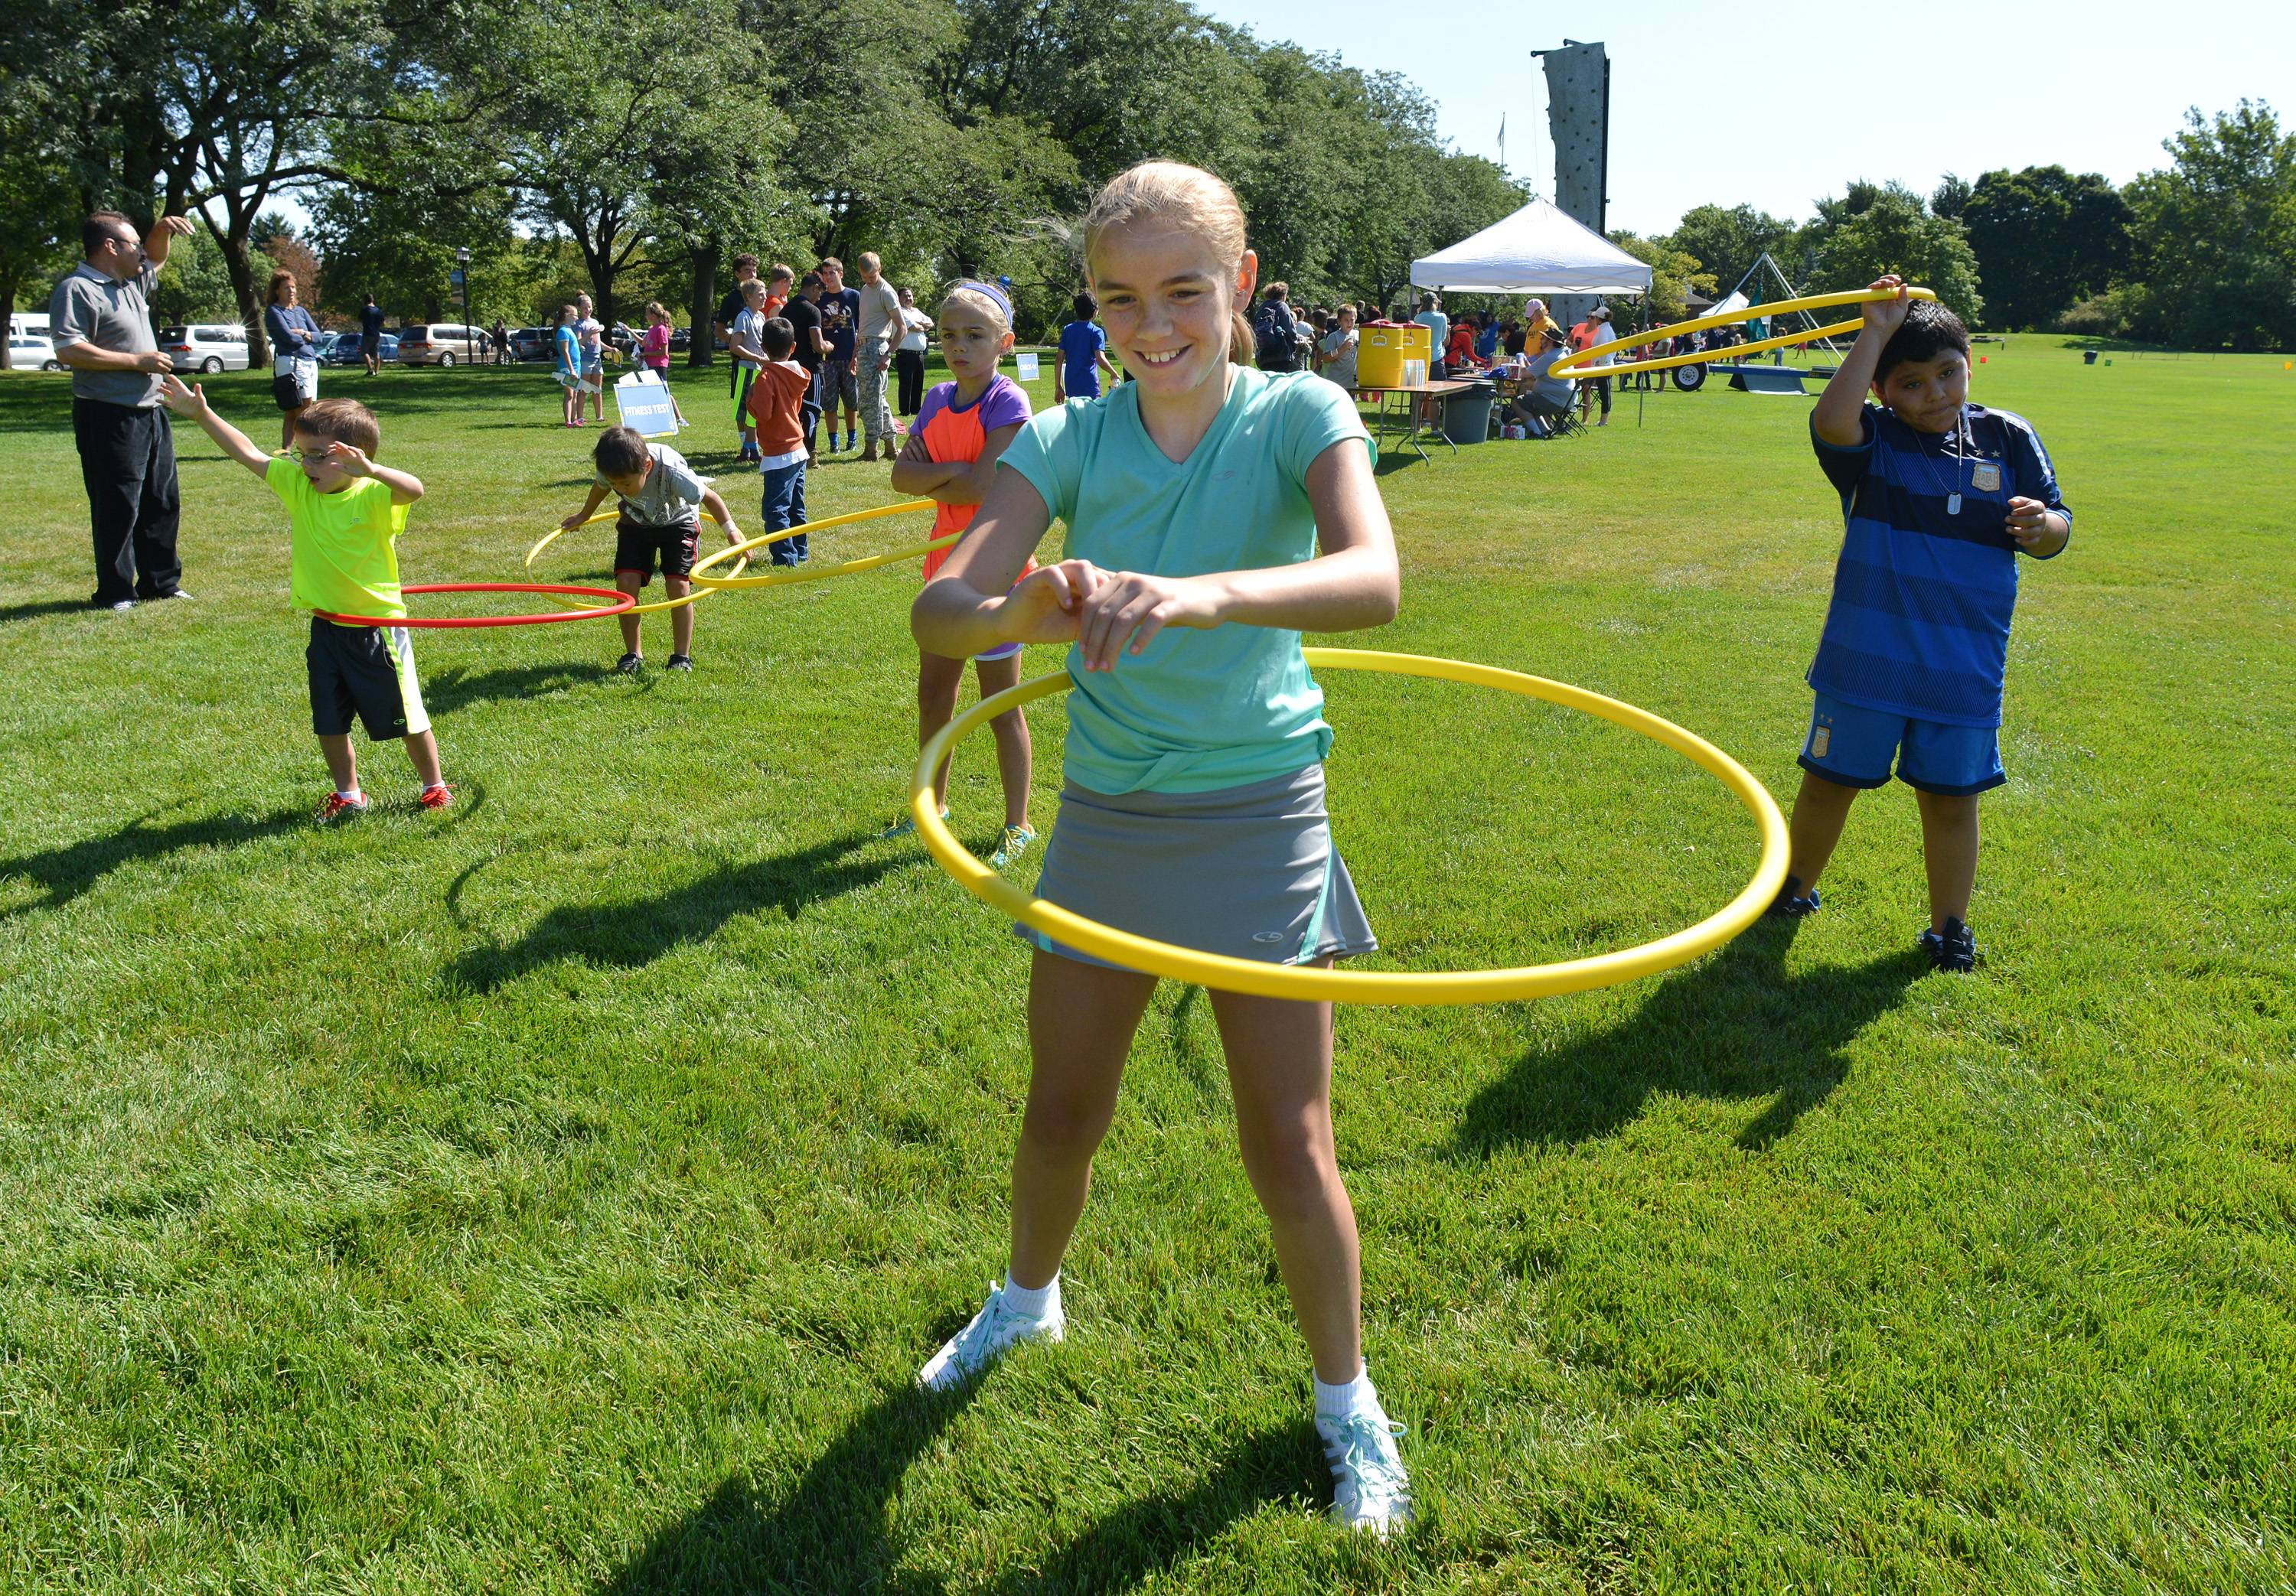 Kaitlyn Blaha, of Wheaton, was one of many kids who showed they could work hula hoops during Rep. Jeanne Ives' second annual Kids' Fitness and Health Boot Camp at Cantigny Park Friday.